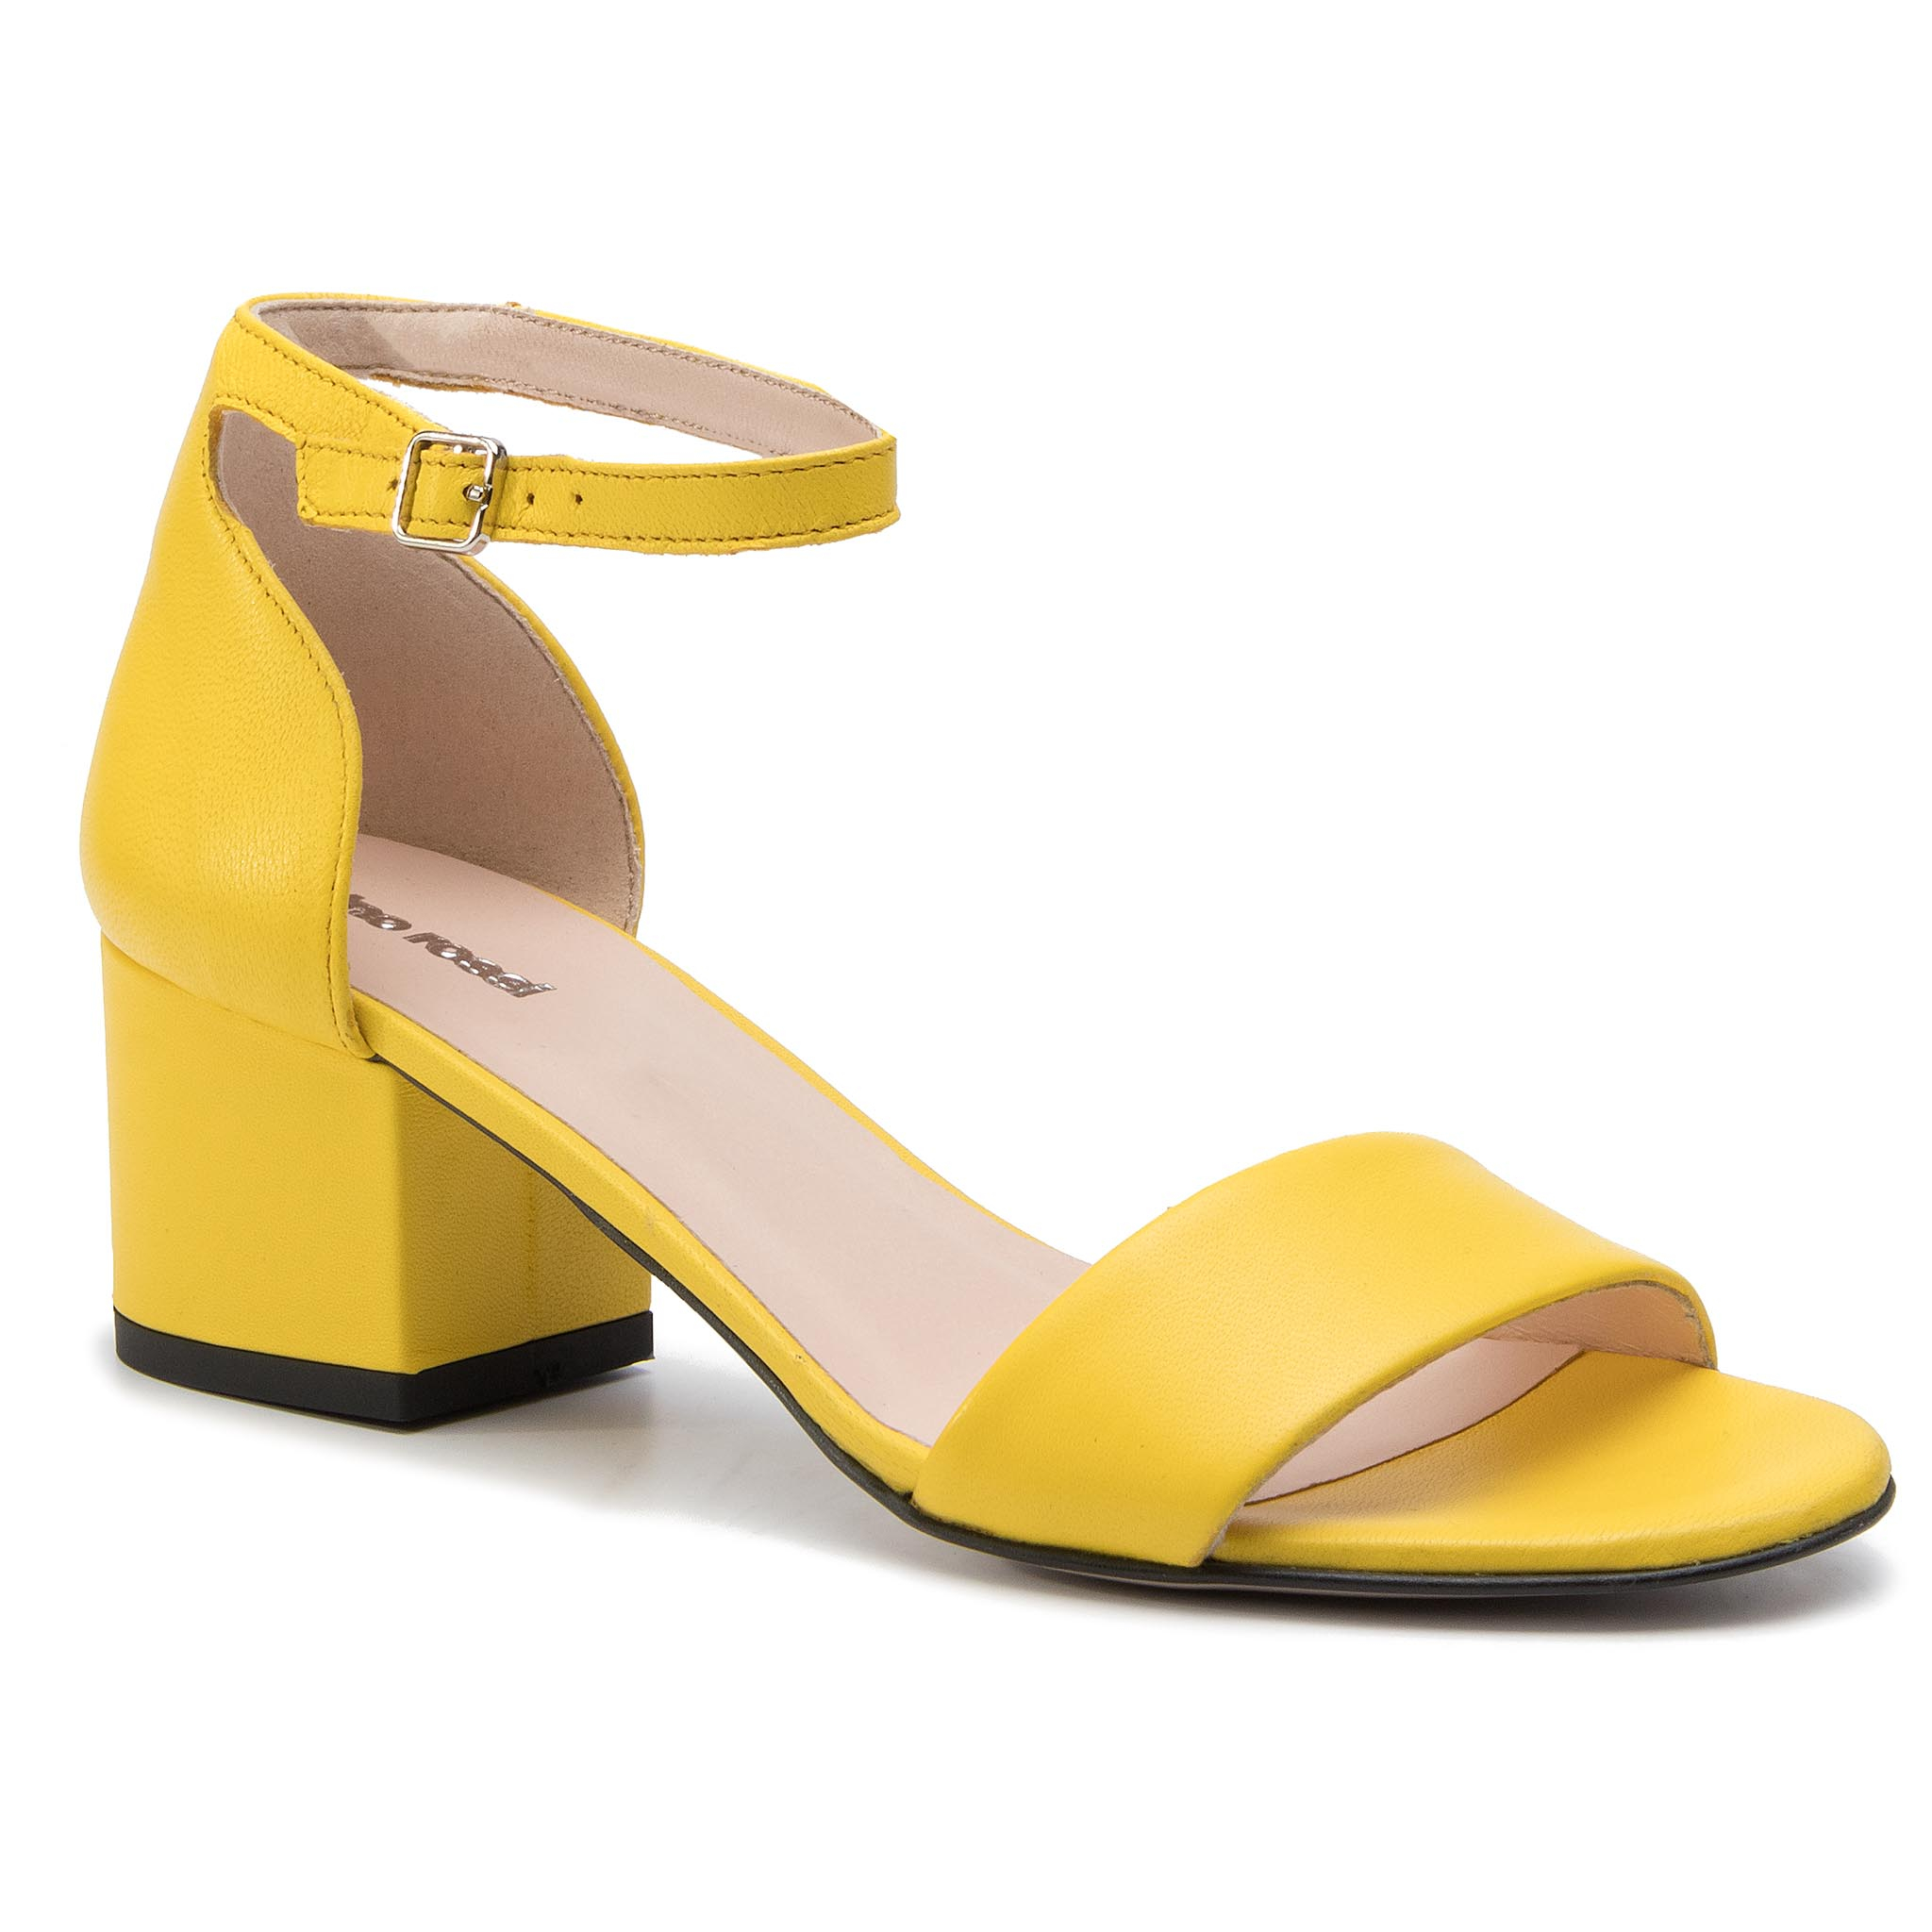 Sandales GINO ROSSI - Omi DNI402-BY9-0299-0273-0 10 - Chaussures.fr - Modalova